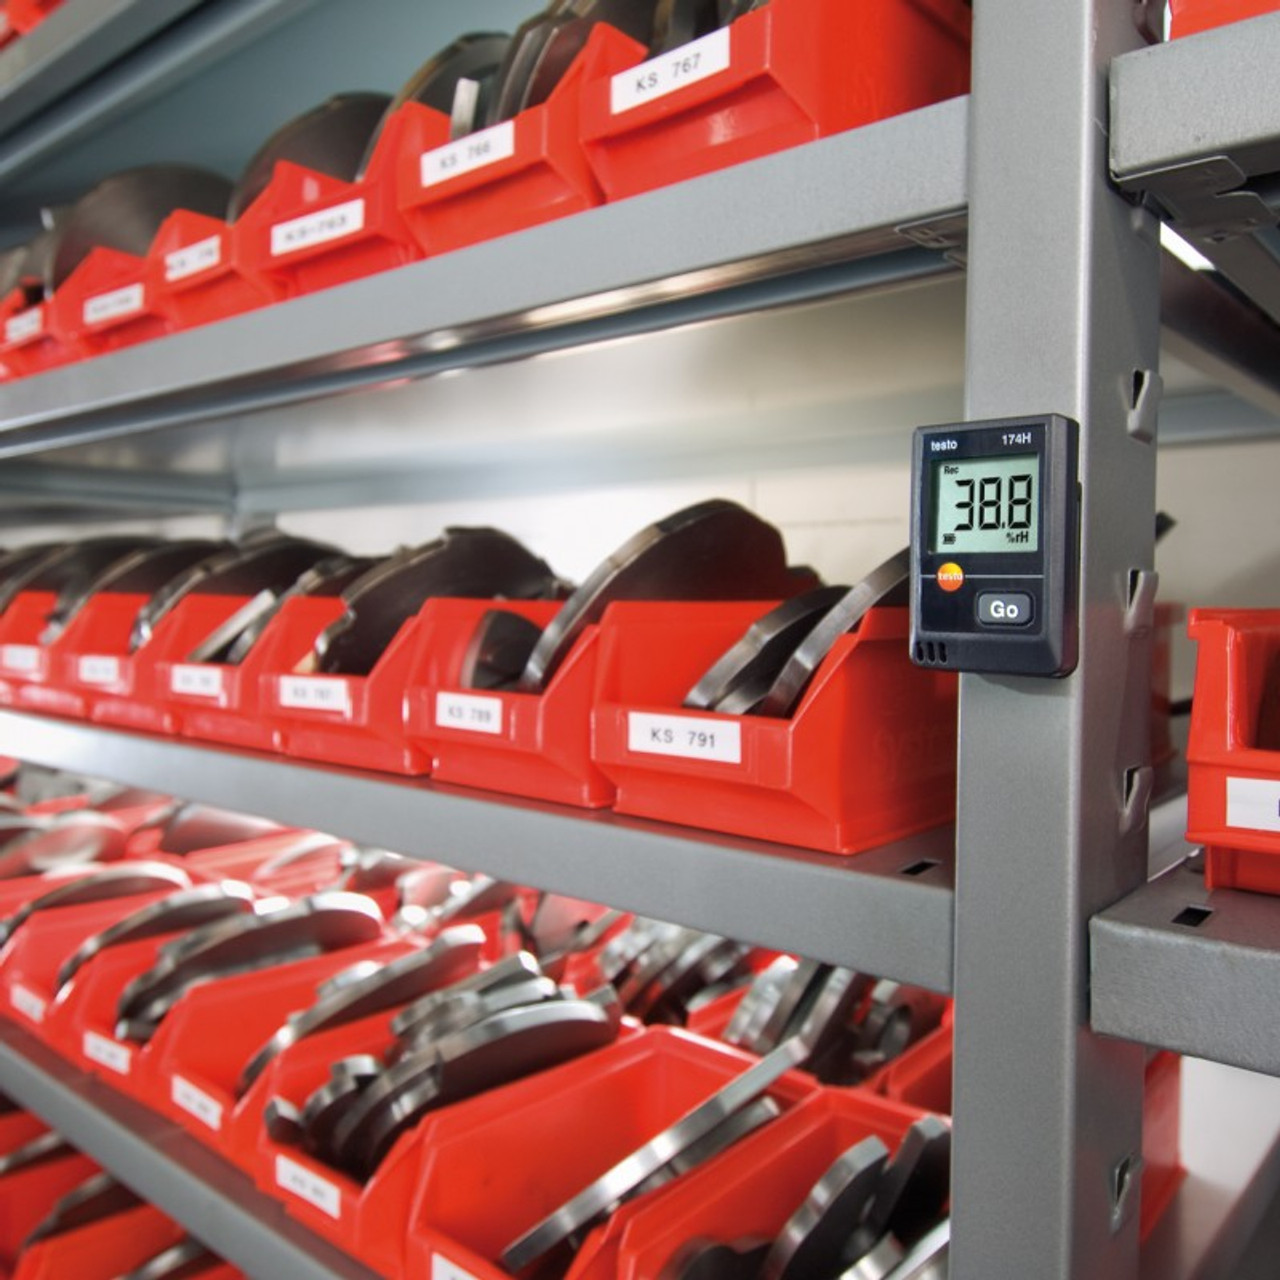 Testo 174H humidity and temperature data logger being used in a typical installation.